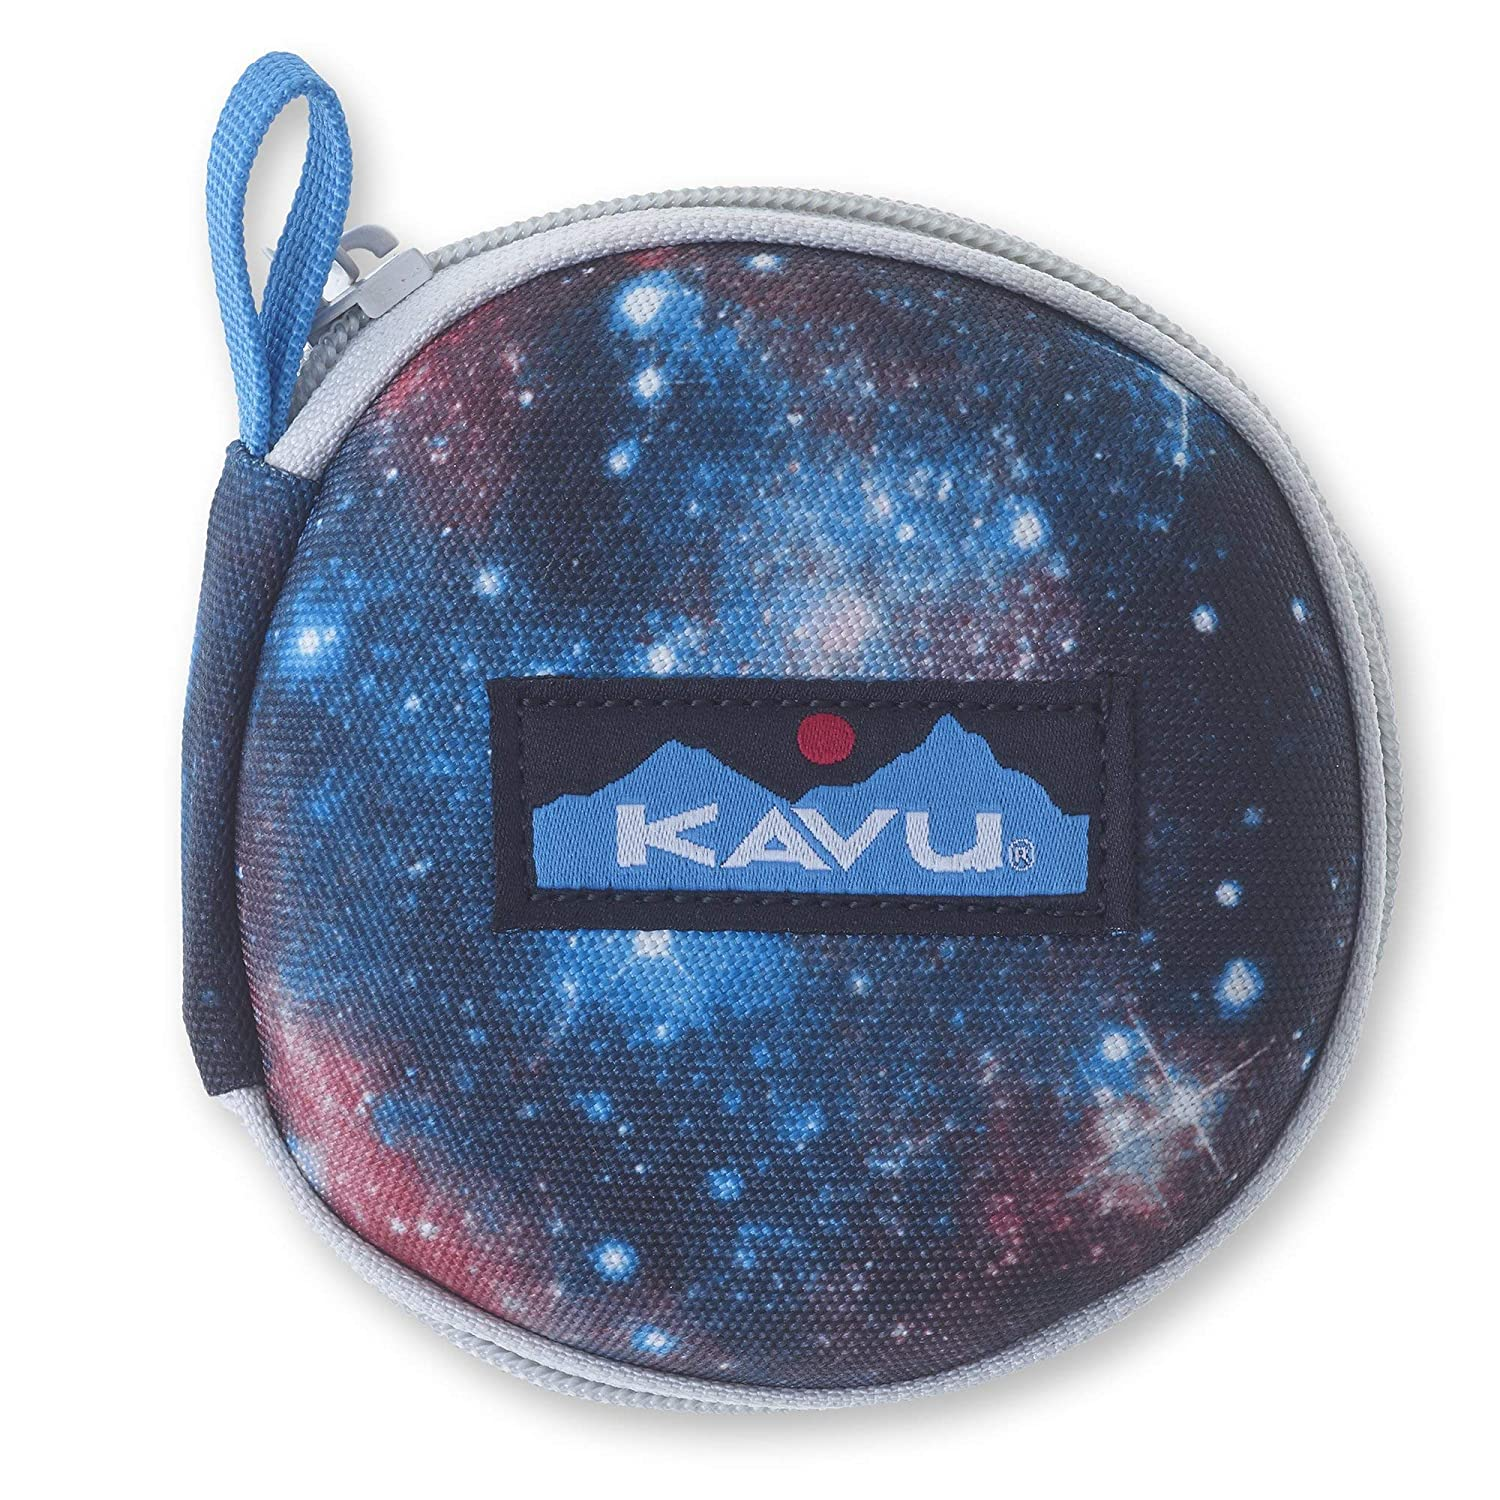 KAVU Powerbox Semi Hard Phone Charger USB Cable Case